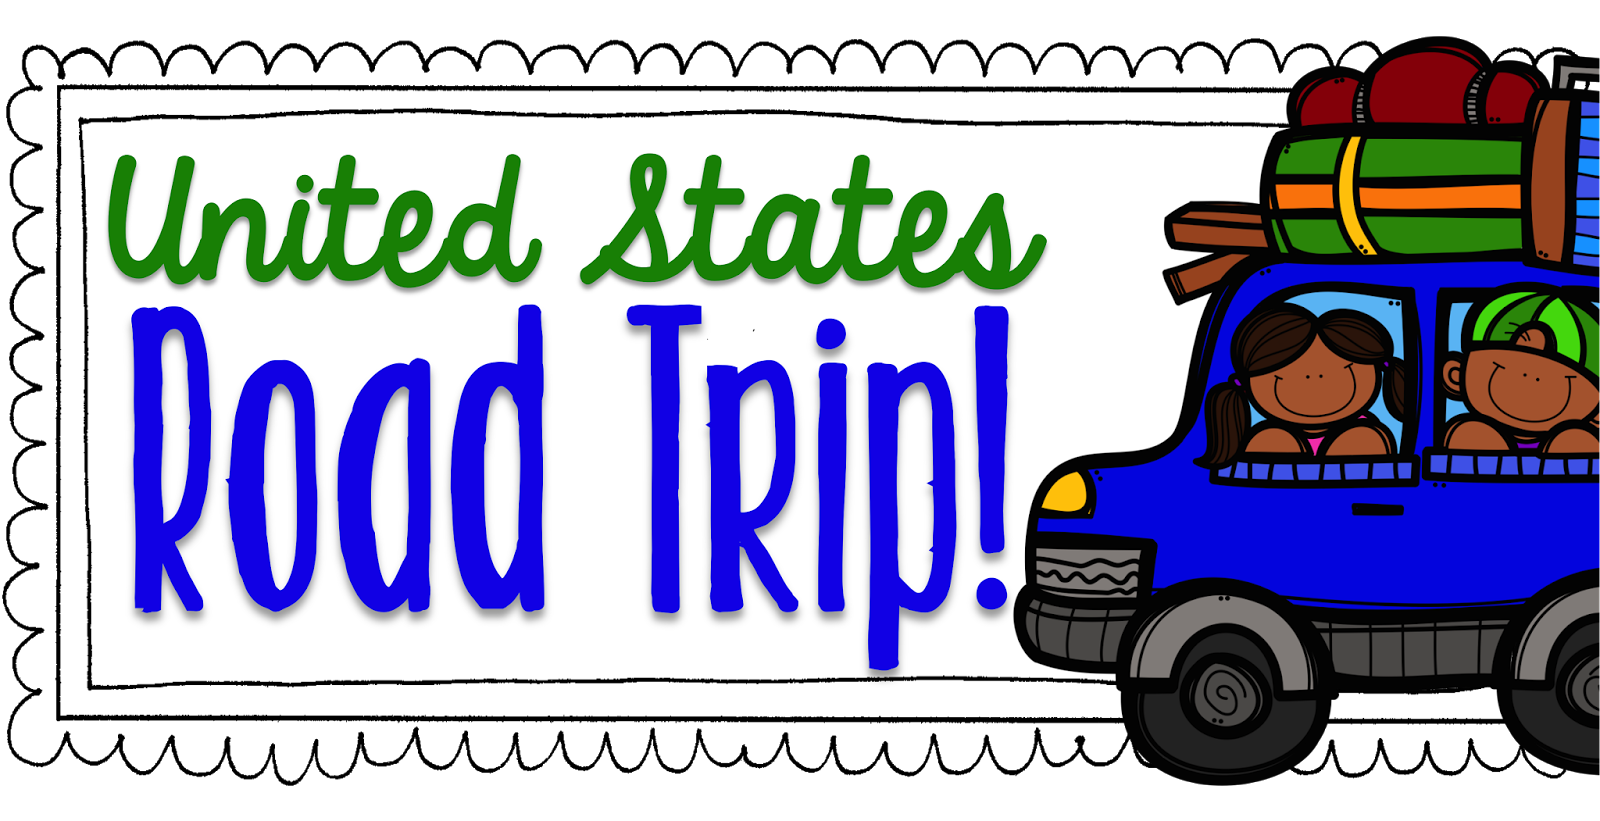 Road trip united states clipart svg royalty free The Primary Gal: United States Road Trip! svg royalty free